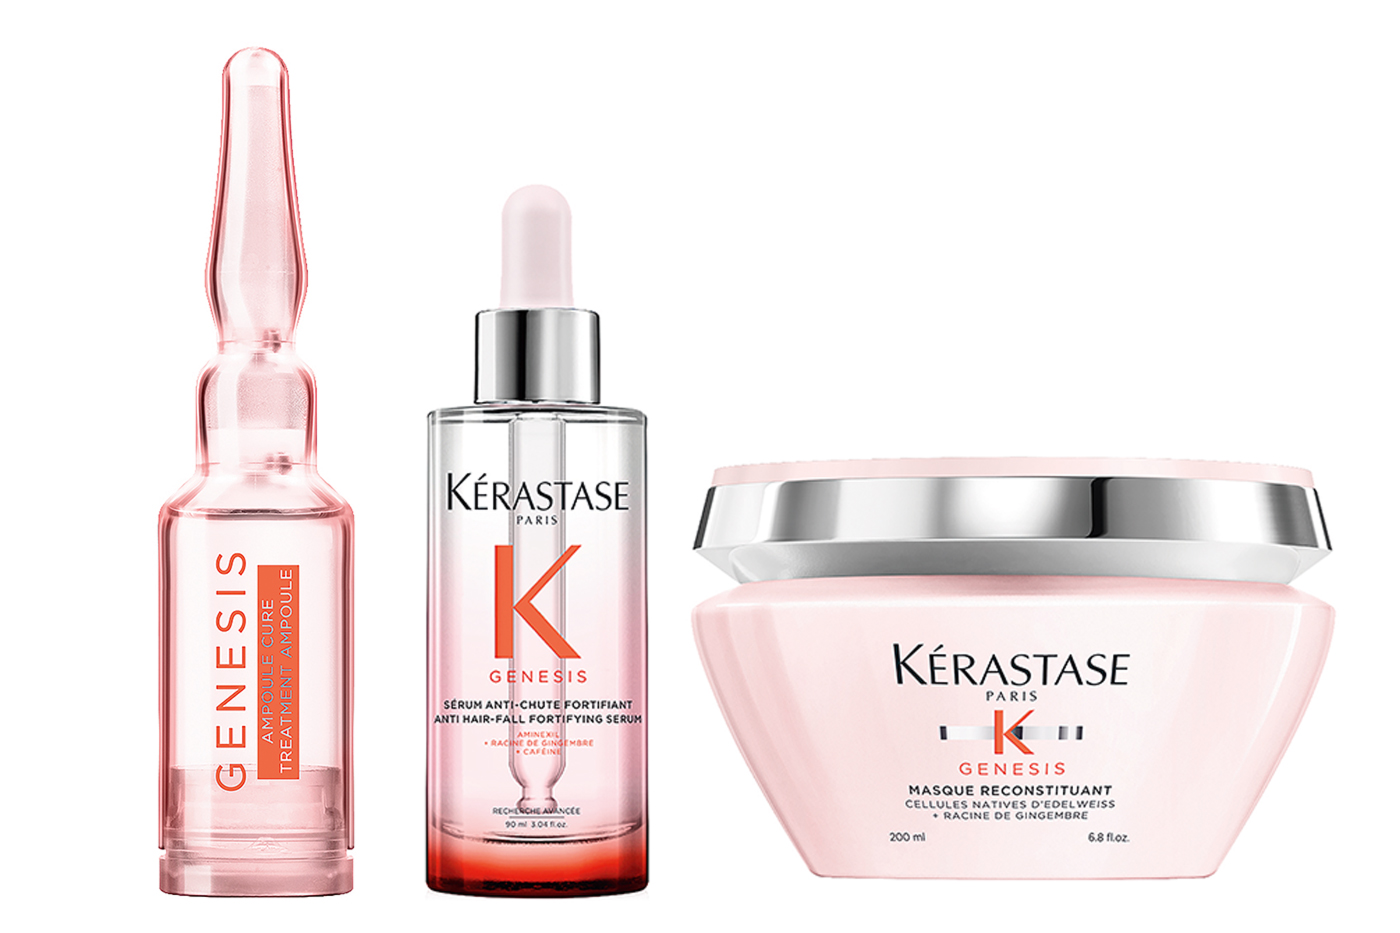 Kérastase unveils Genesis range for hair fall